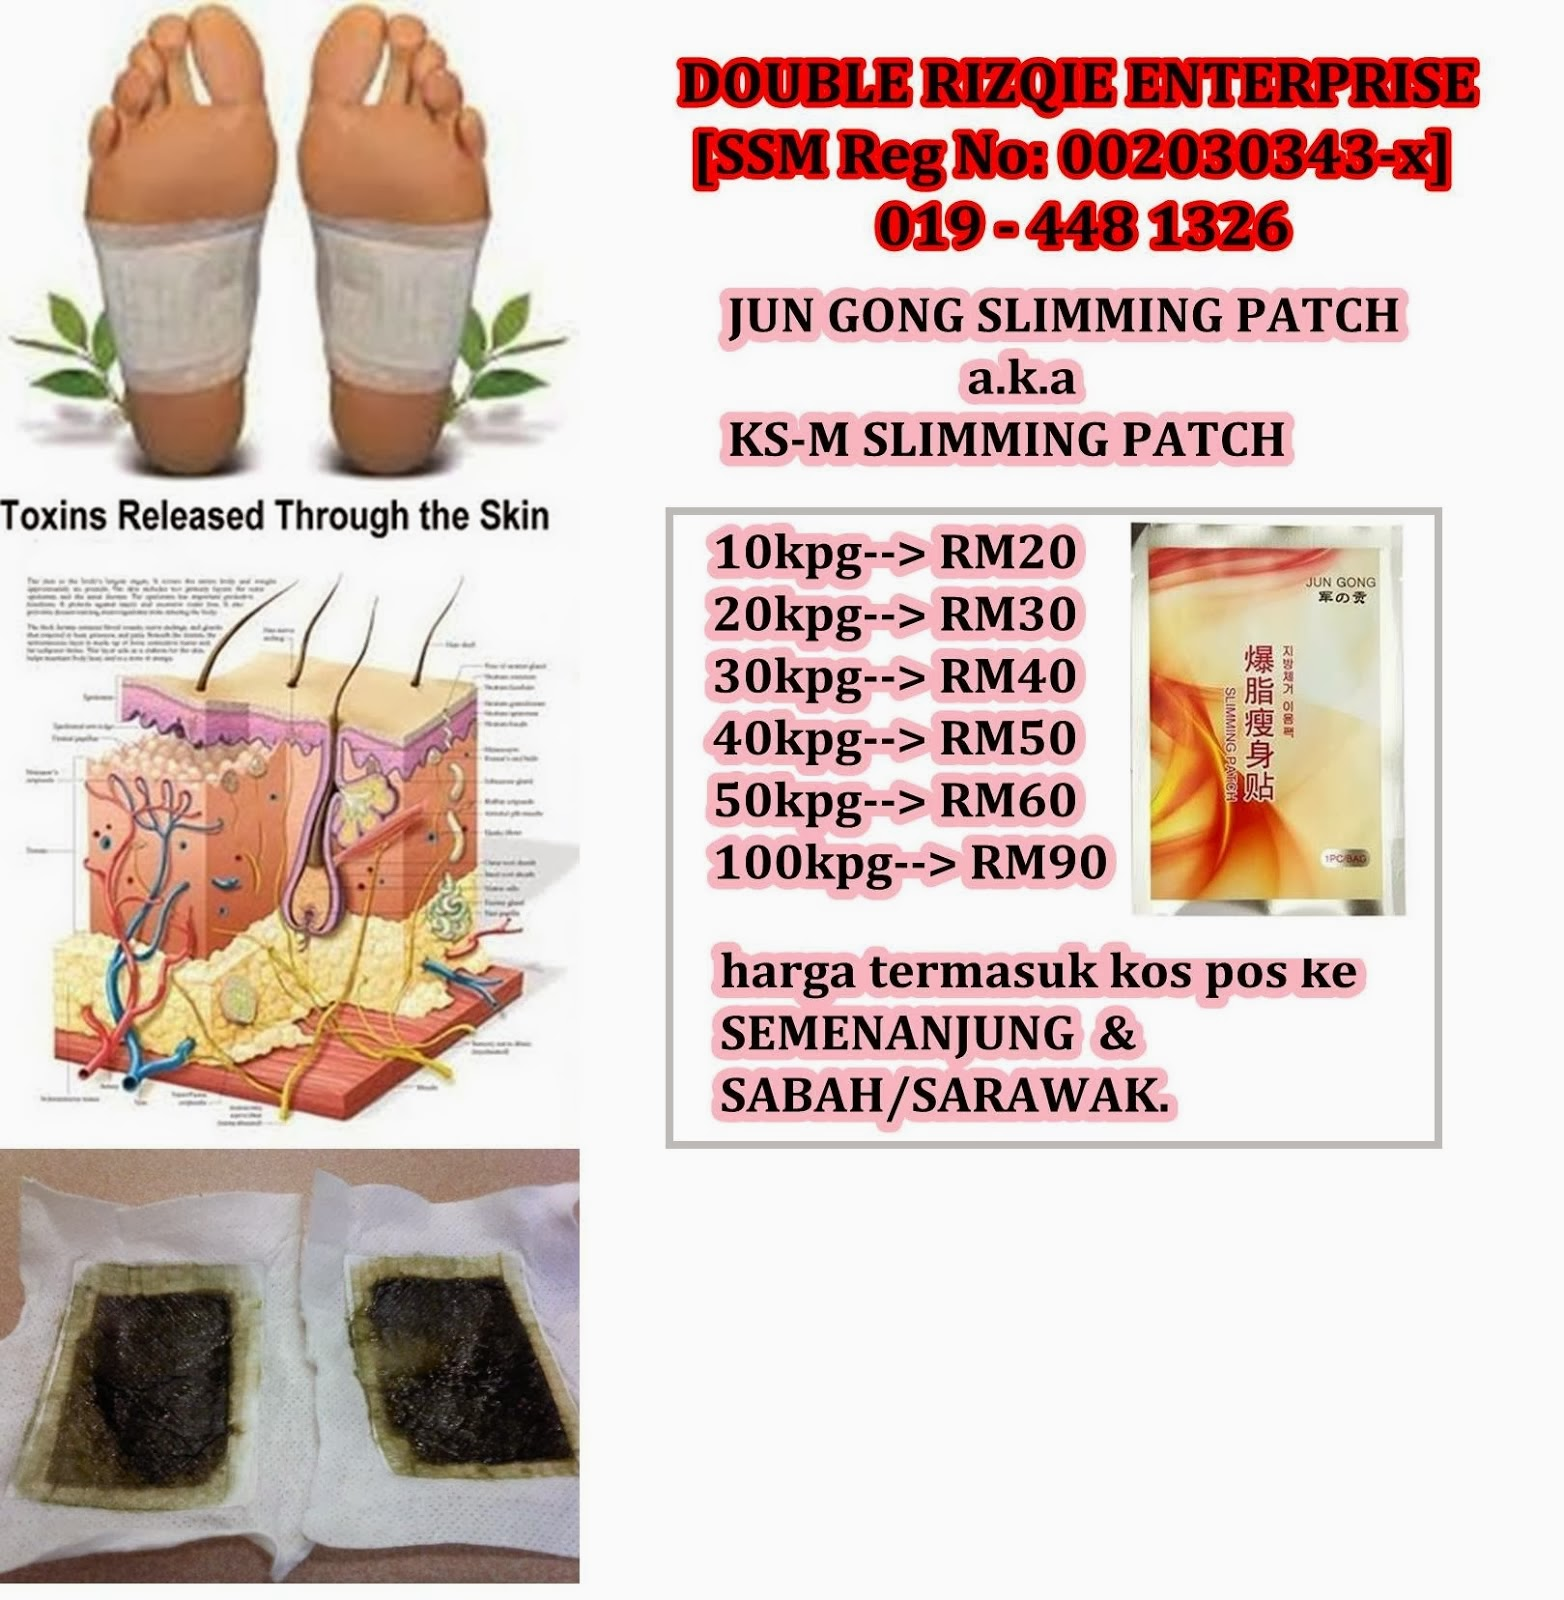 Jun Gong Slimming Patch - detoks-24blogspotcom